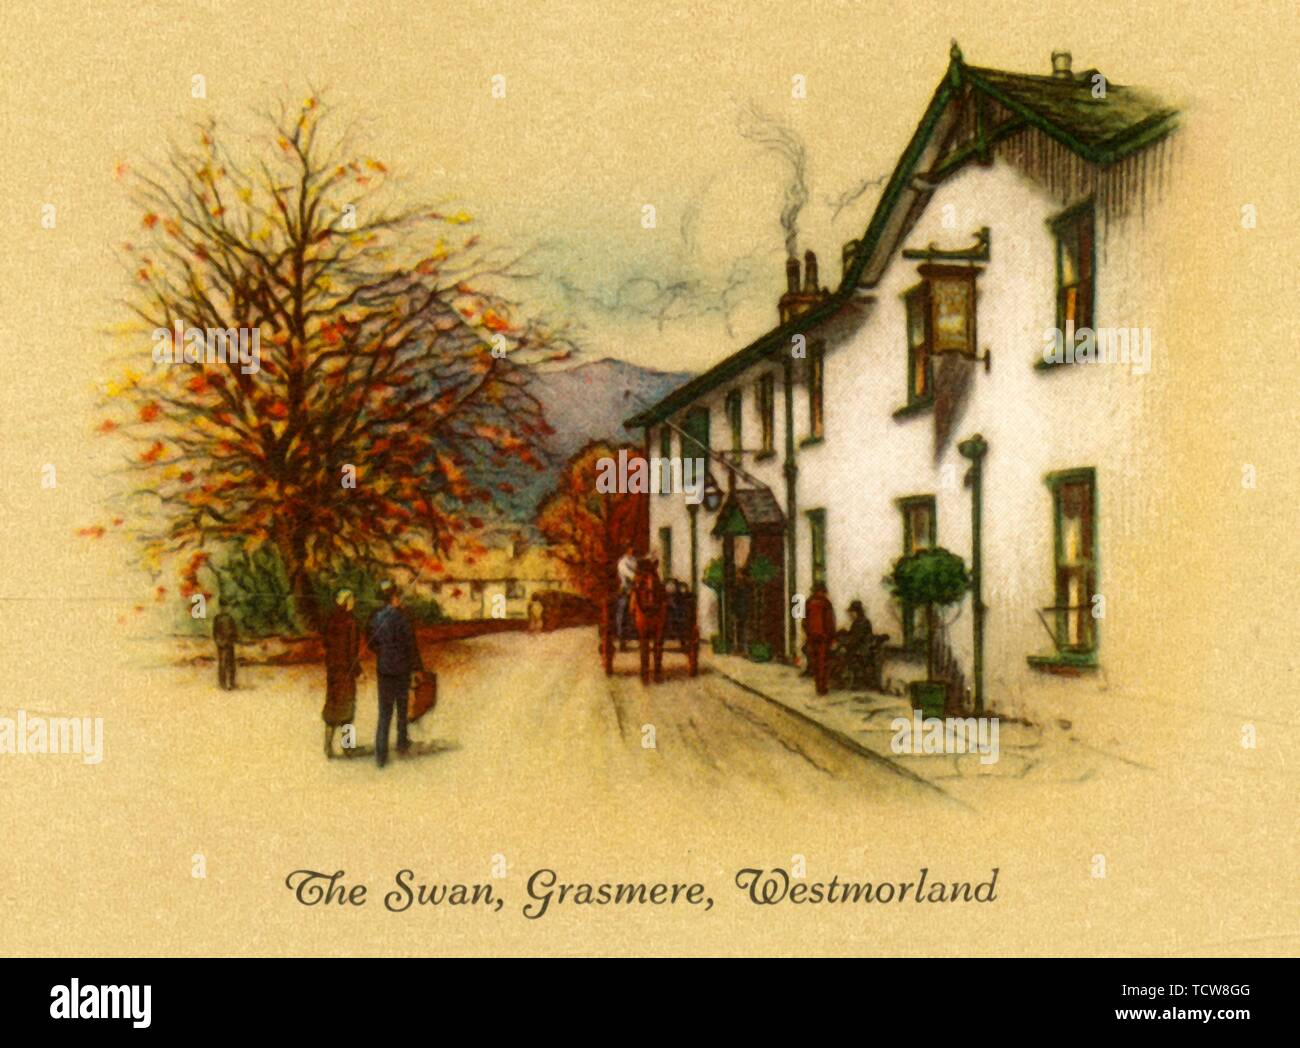 "'The Swan, Grasmere, Westmorland', 1939. Macdonald Swan Hotel,  former coaching inn built 1650s, one of the oldest hotels in the Lake District, mentioned in Wordsworth's poem ""The Waggoner"". From ""Old Inns - Second Series of 40"", . [W. D. & H. O. Wills] - Stock Image"